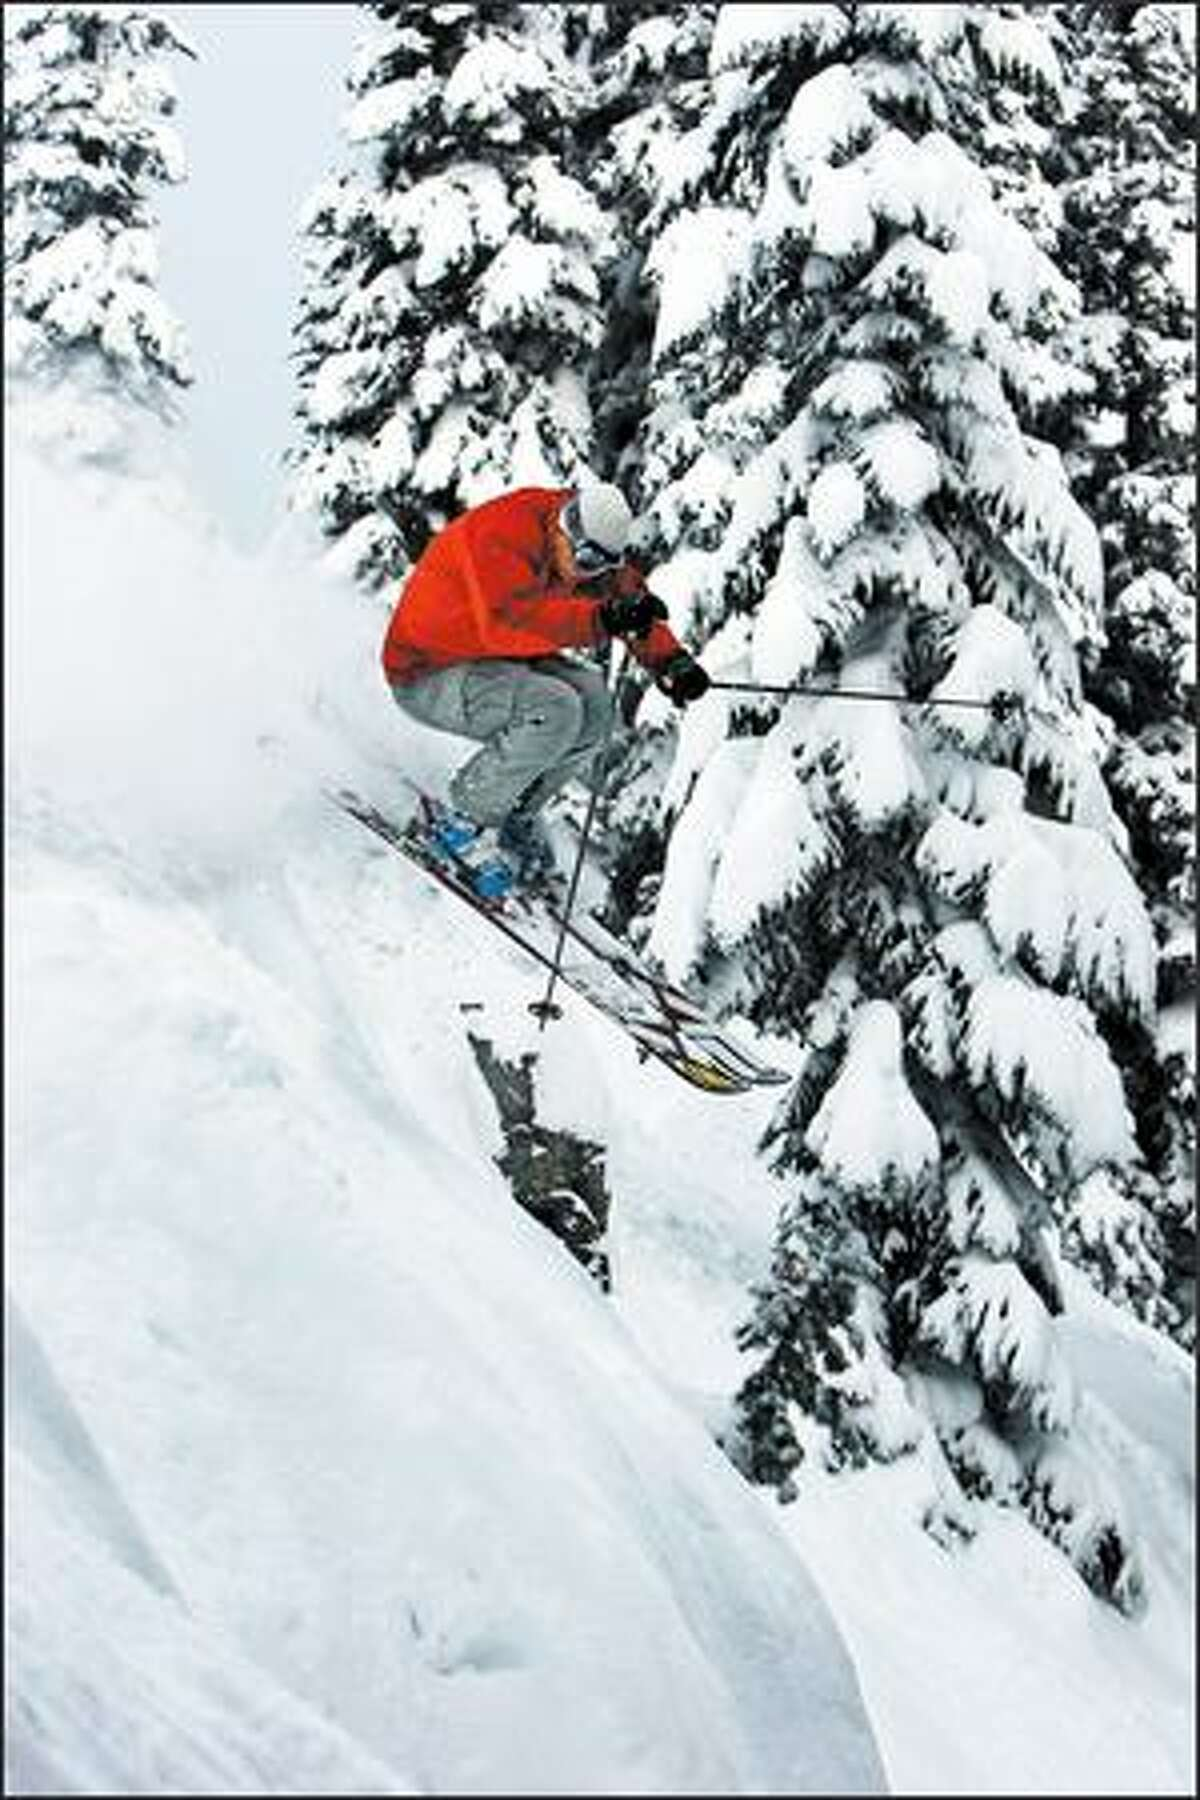 Keith Rollins, who makes his living as a freeskier, pops through fresh powder in Crystal Mountain's backcountry.